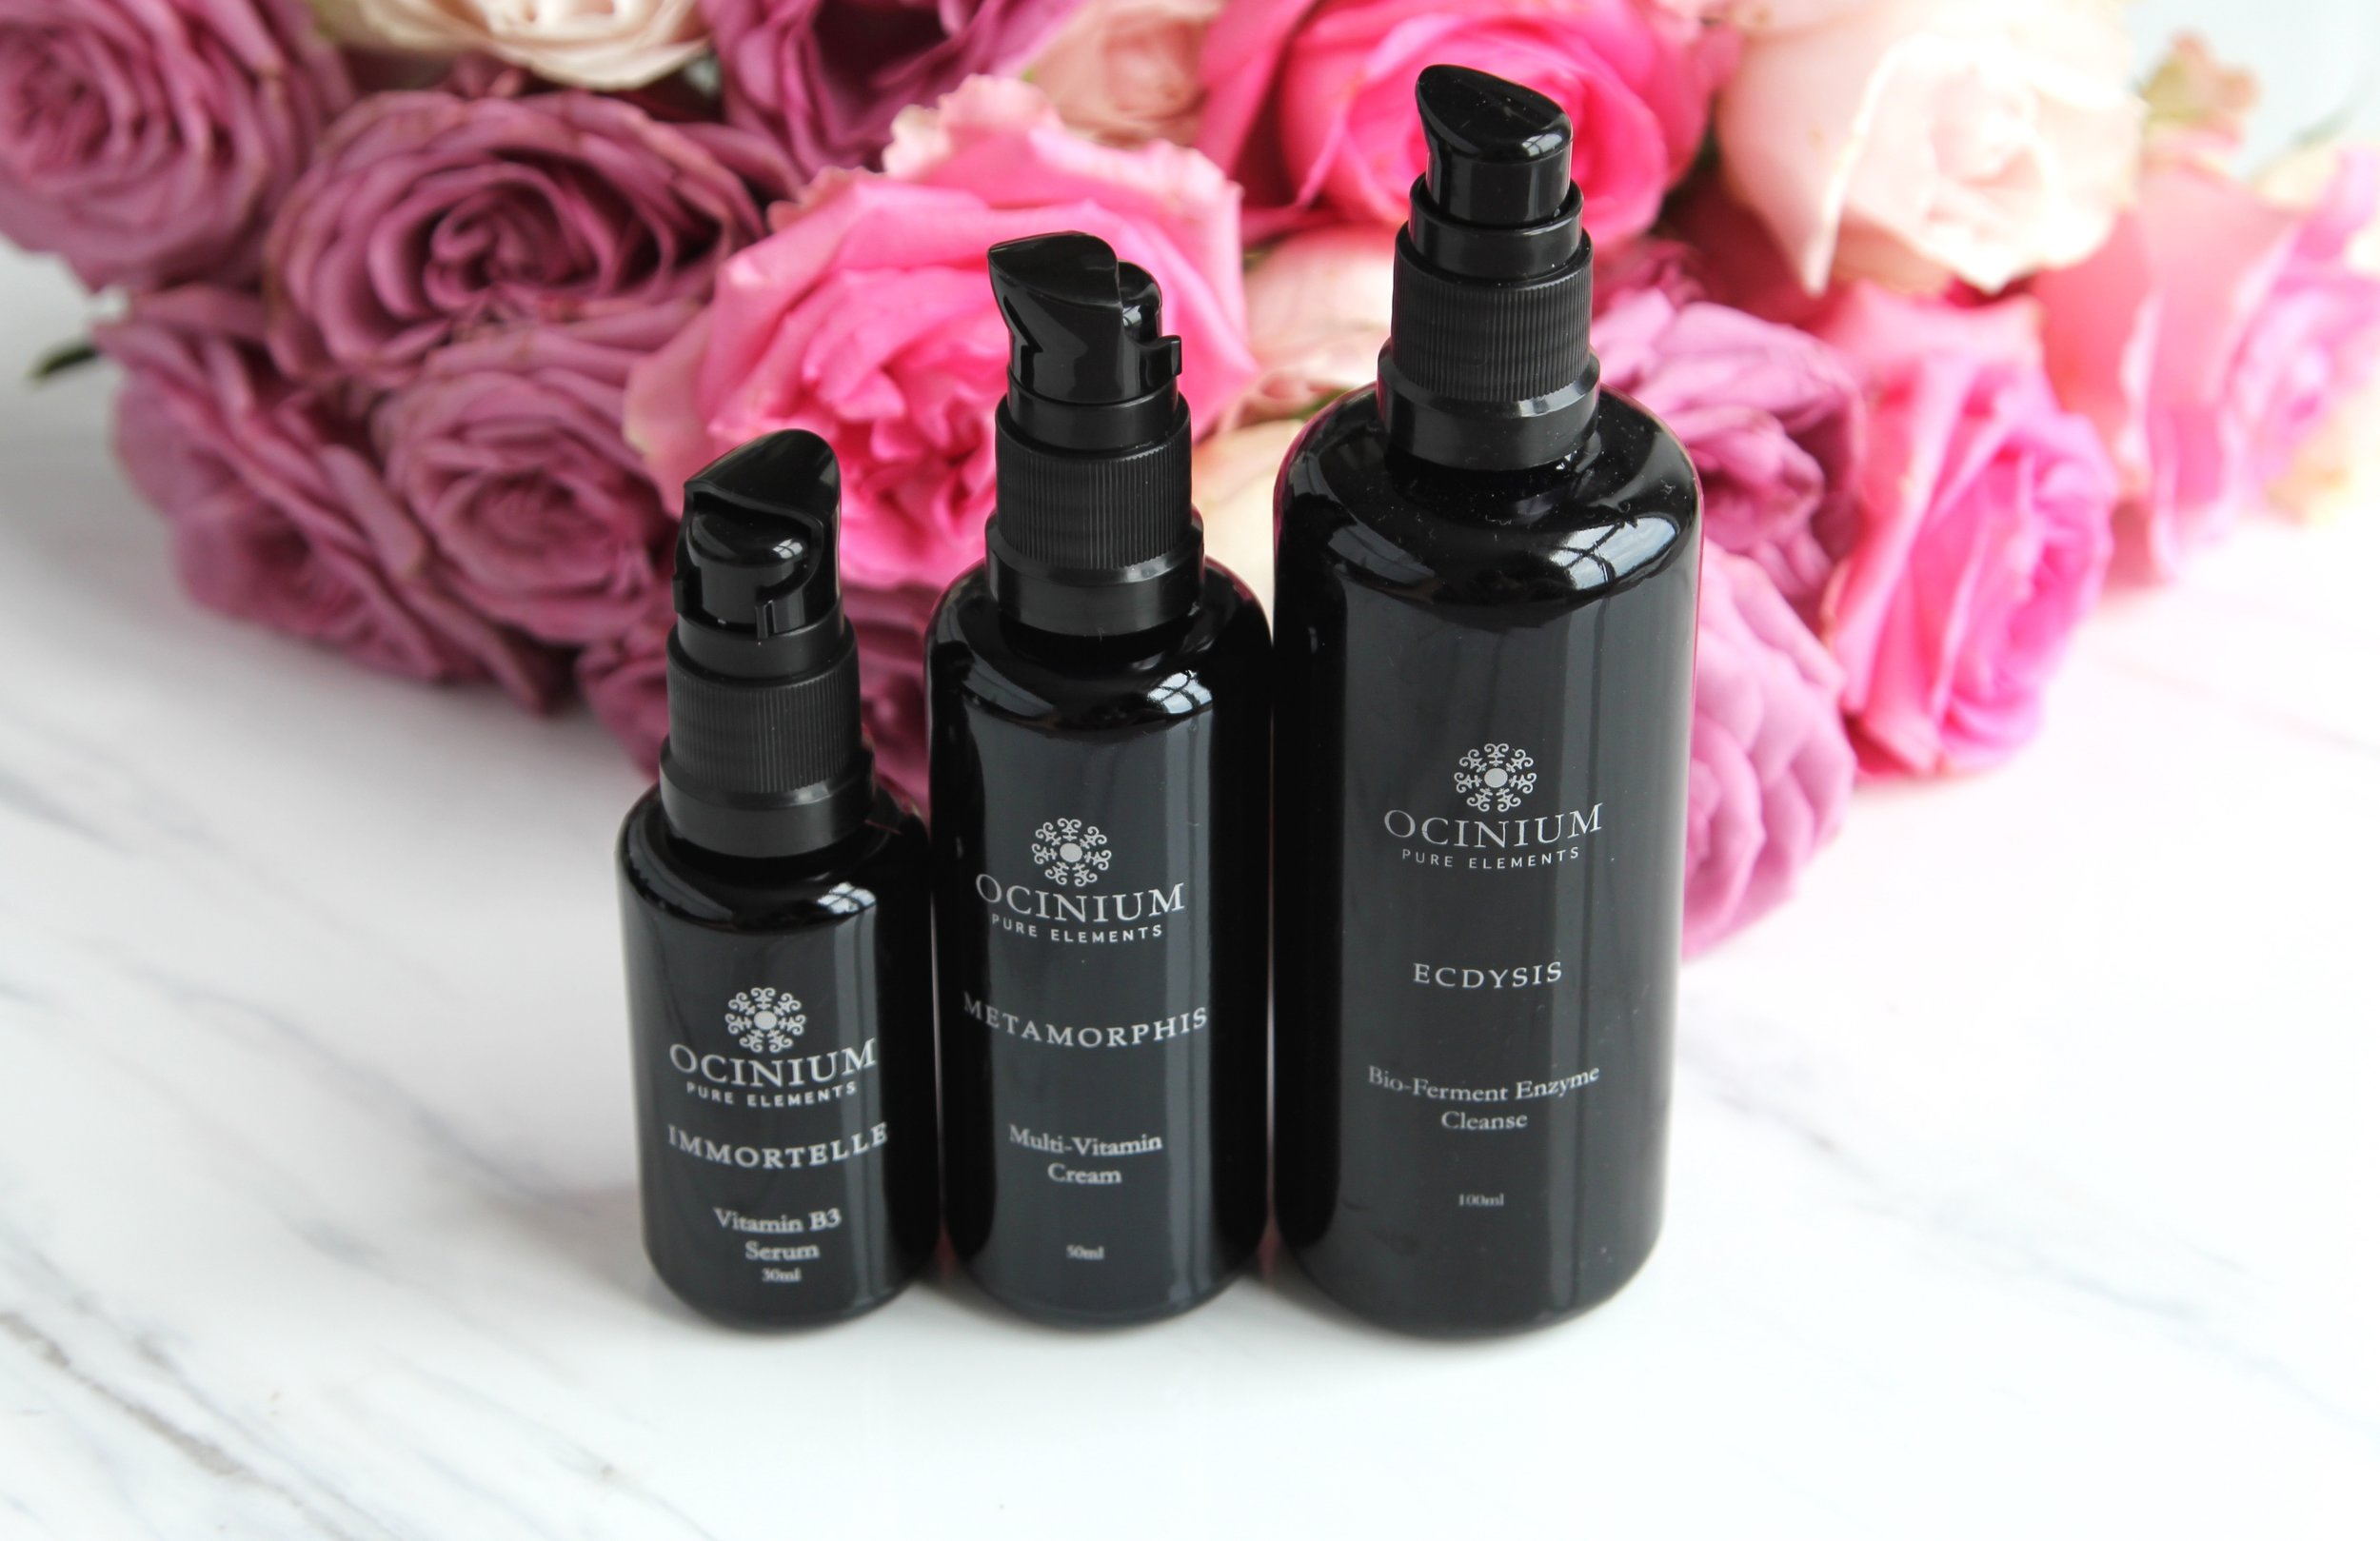 Win this set from Ocinium (which also happens to be one of Cassandra's favourite routine of products)...details to come soon!